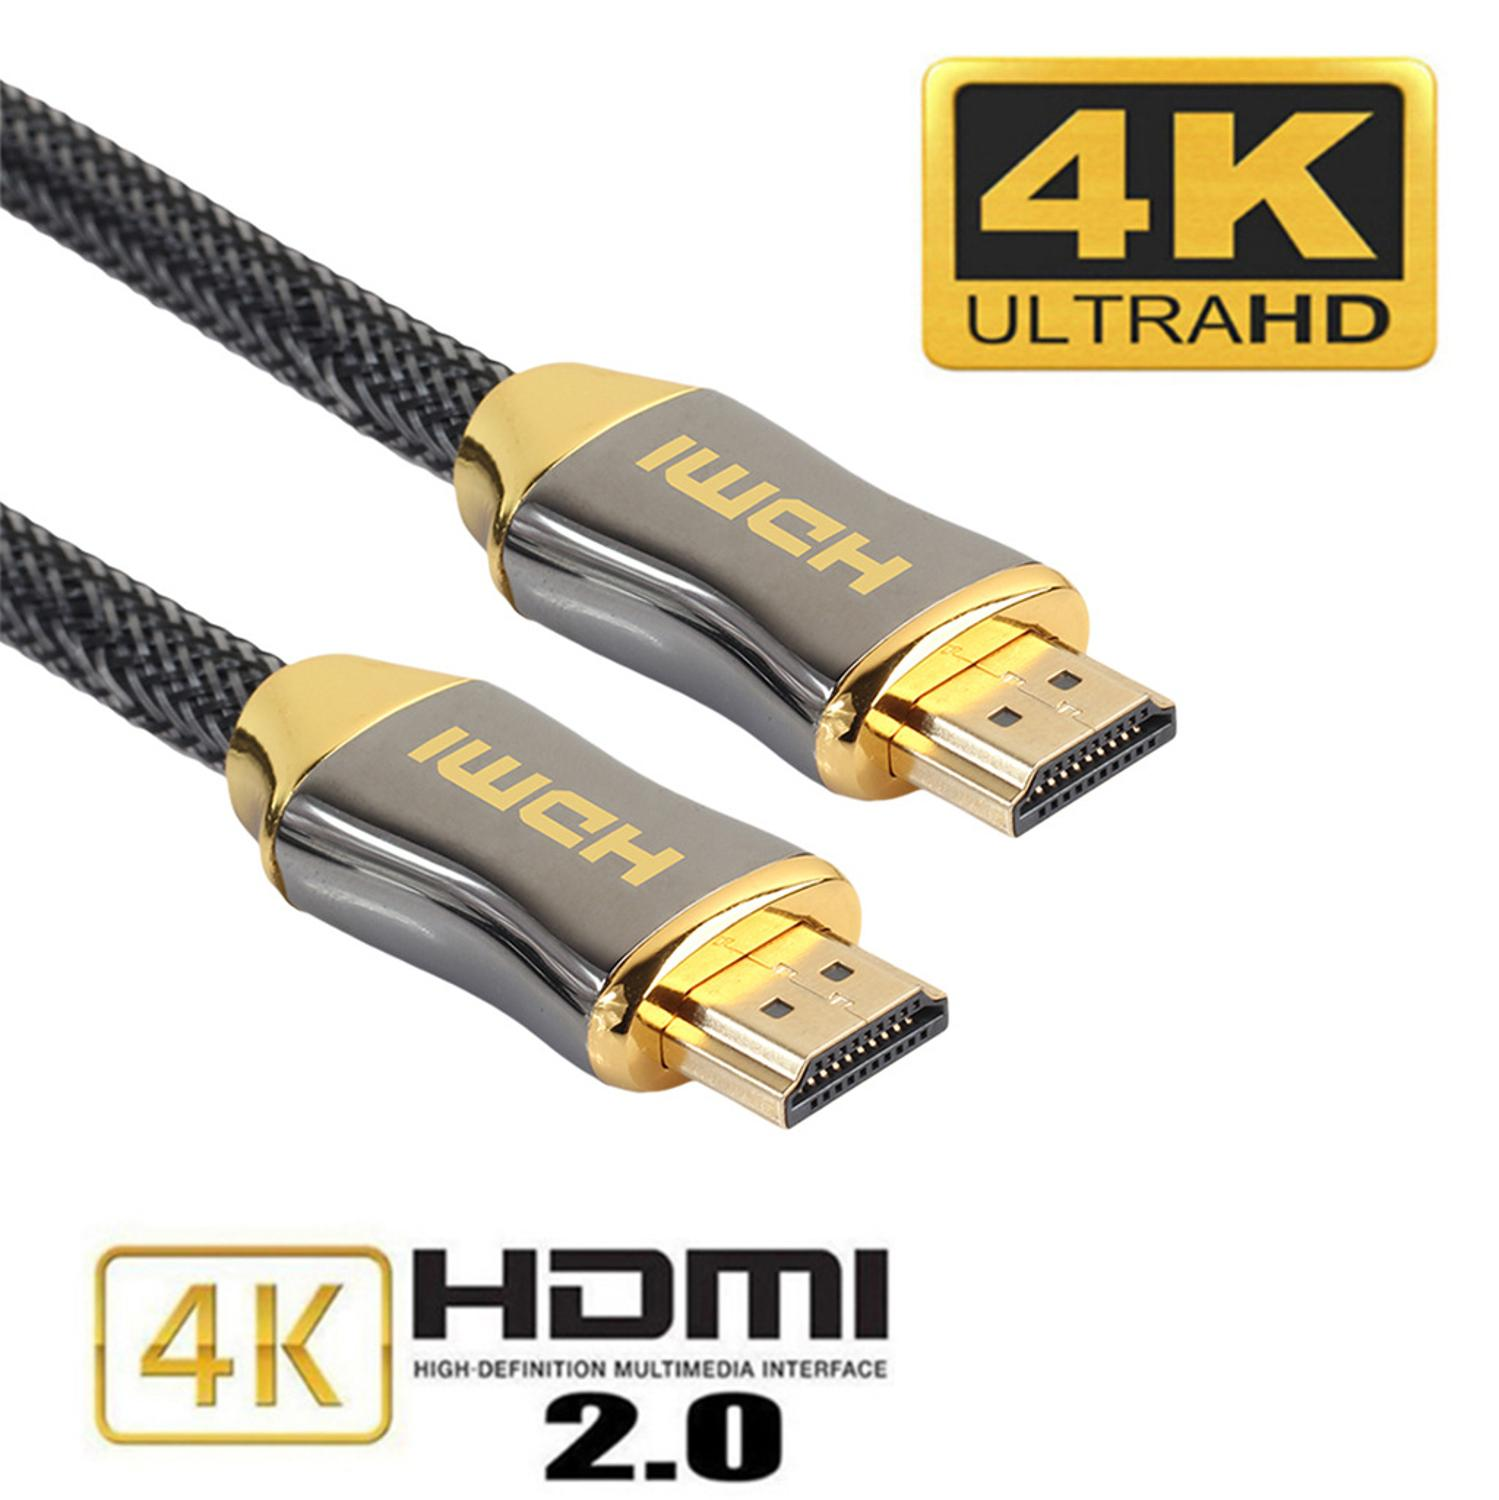 Cable-Cord Connection Xbox Hdmi-To-Hdmi-Cable High-Speed Golden-Plated 60hz for UHD FHD